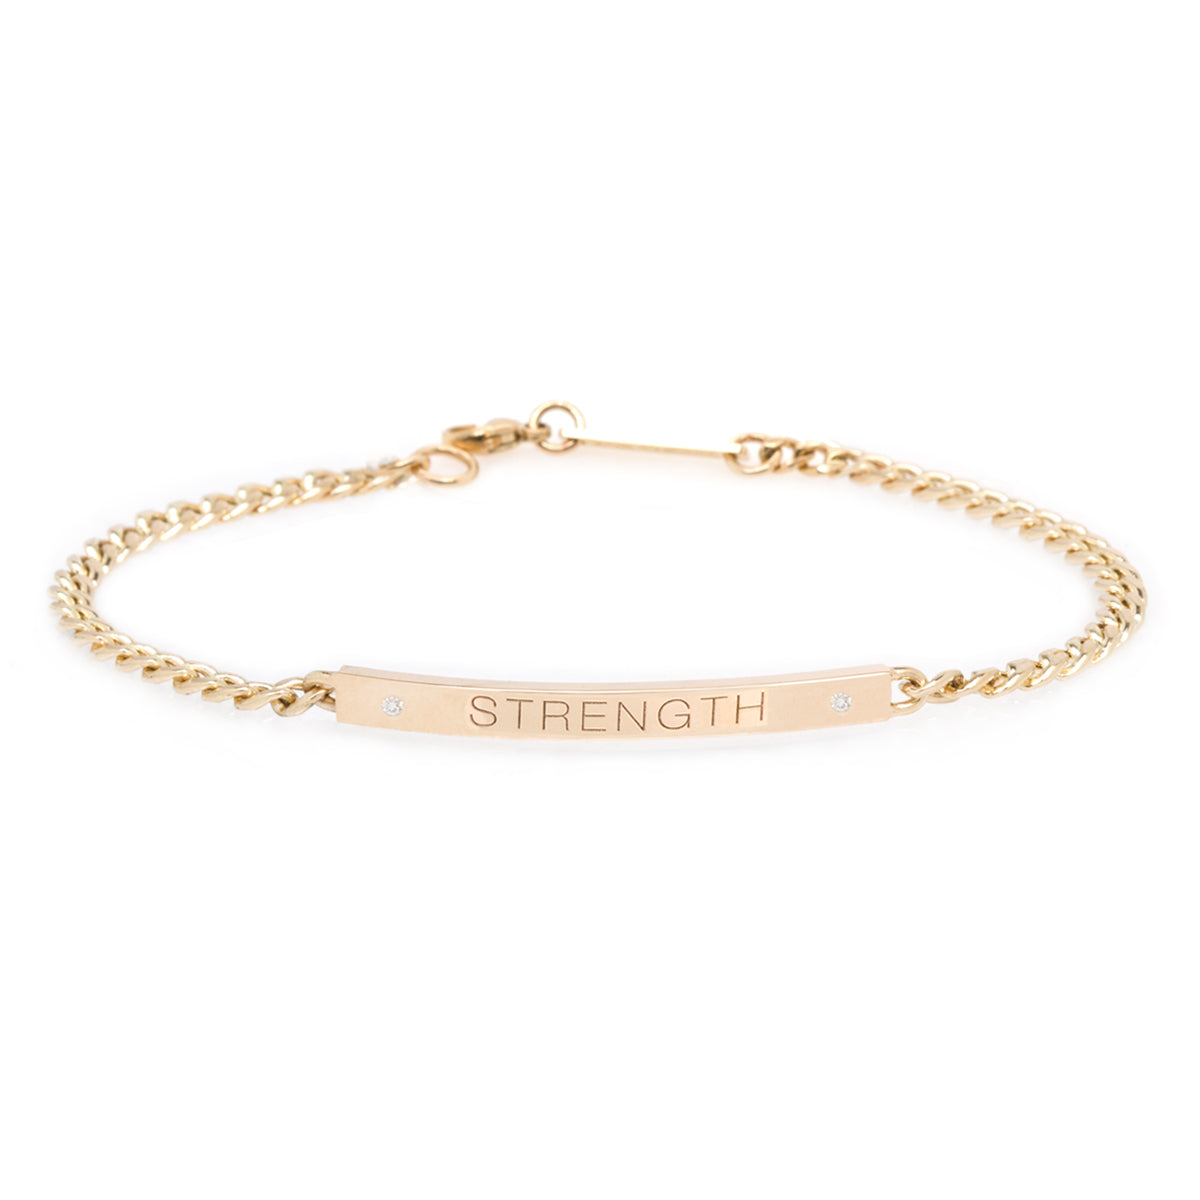 14k small curb chain personalized ID bracelet with diamonds